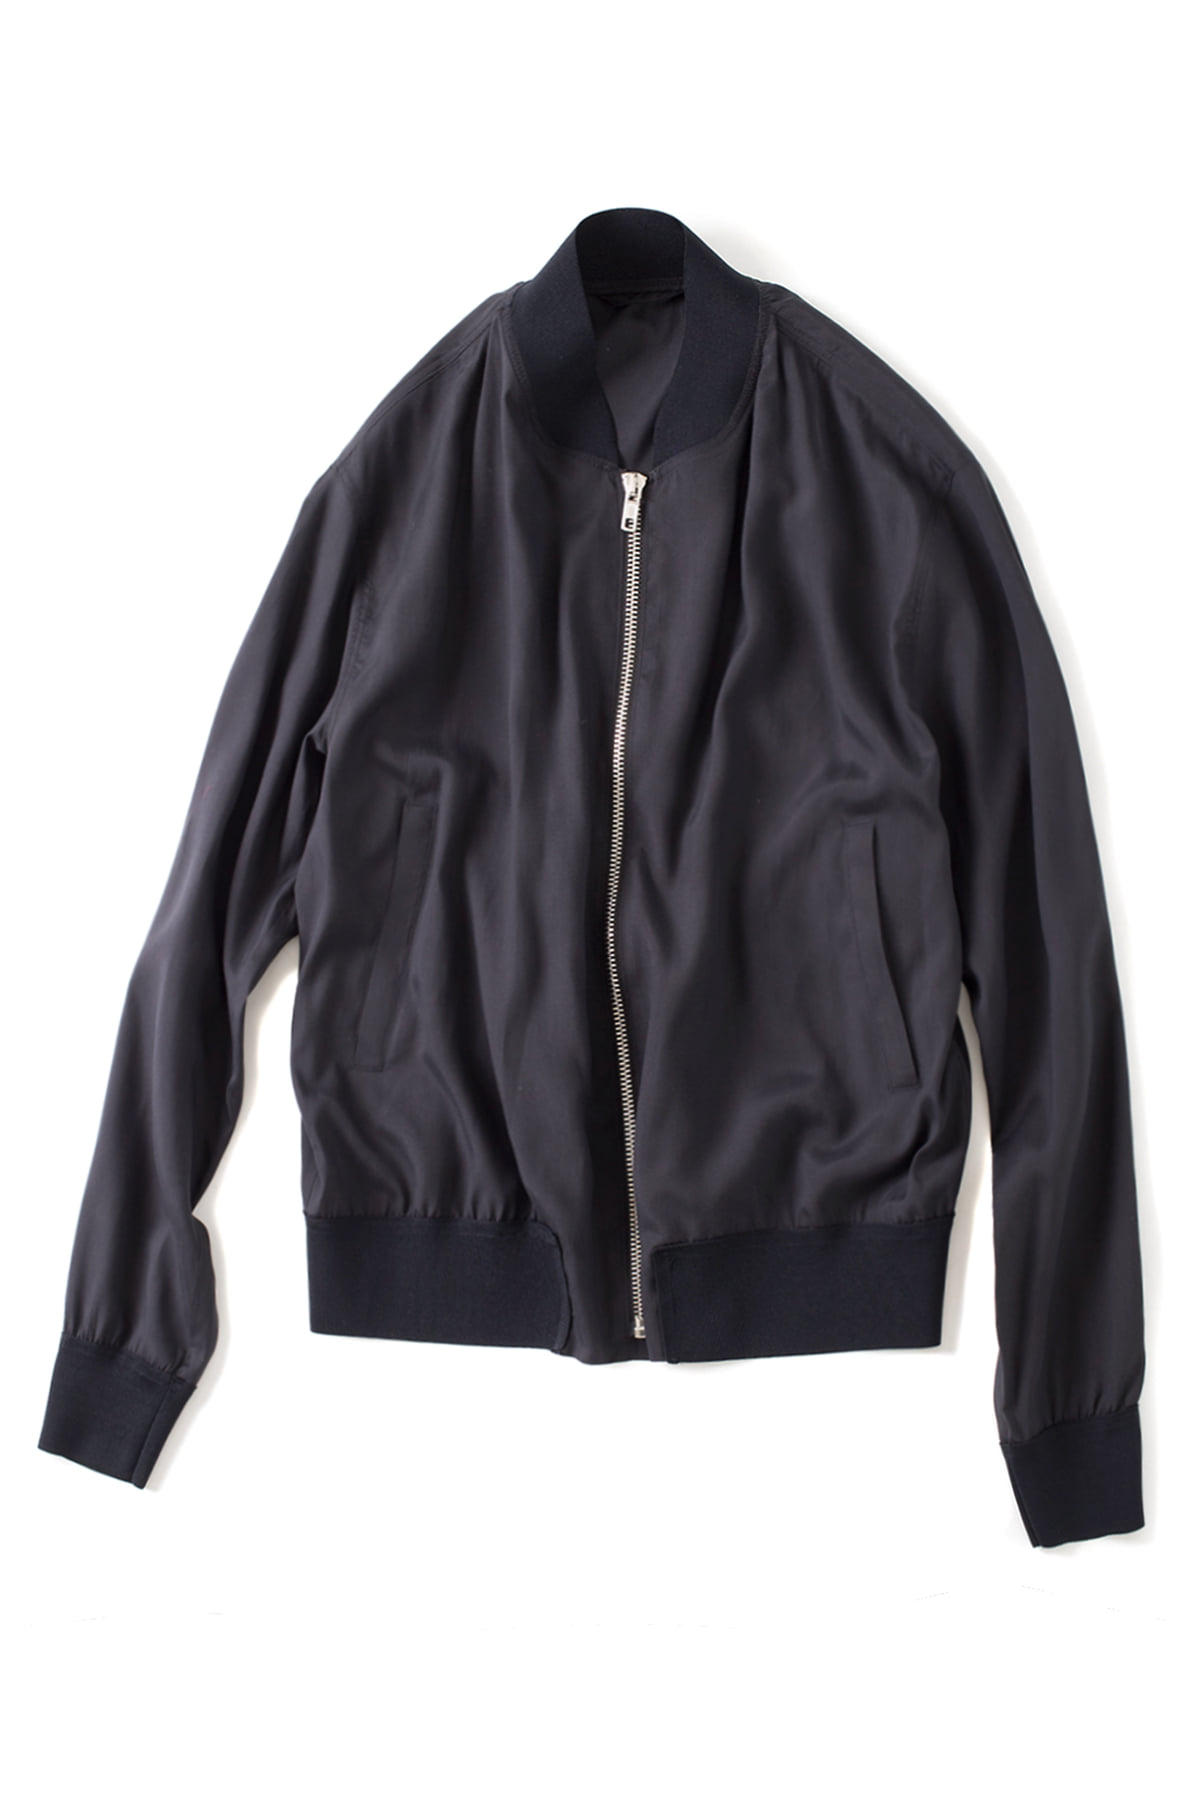 Federico Curradi : Bomber Jacket (Blue Navy)